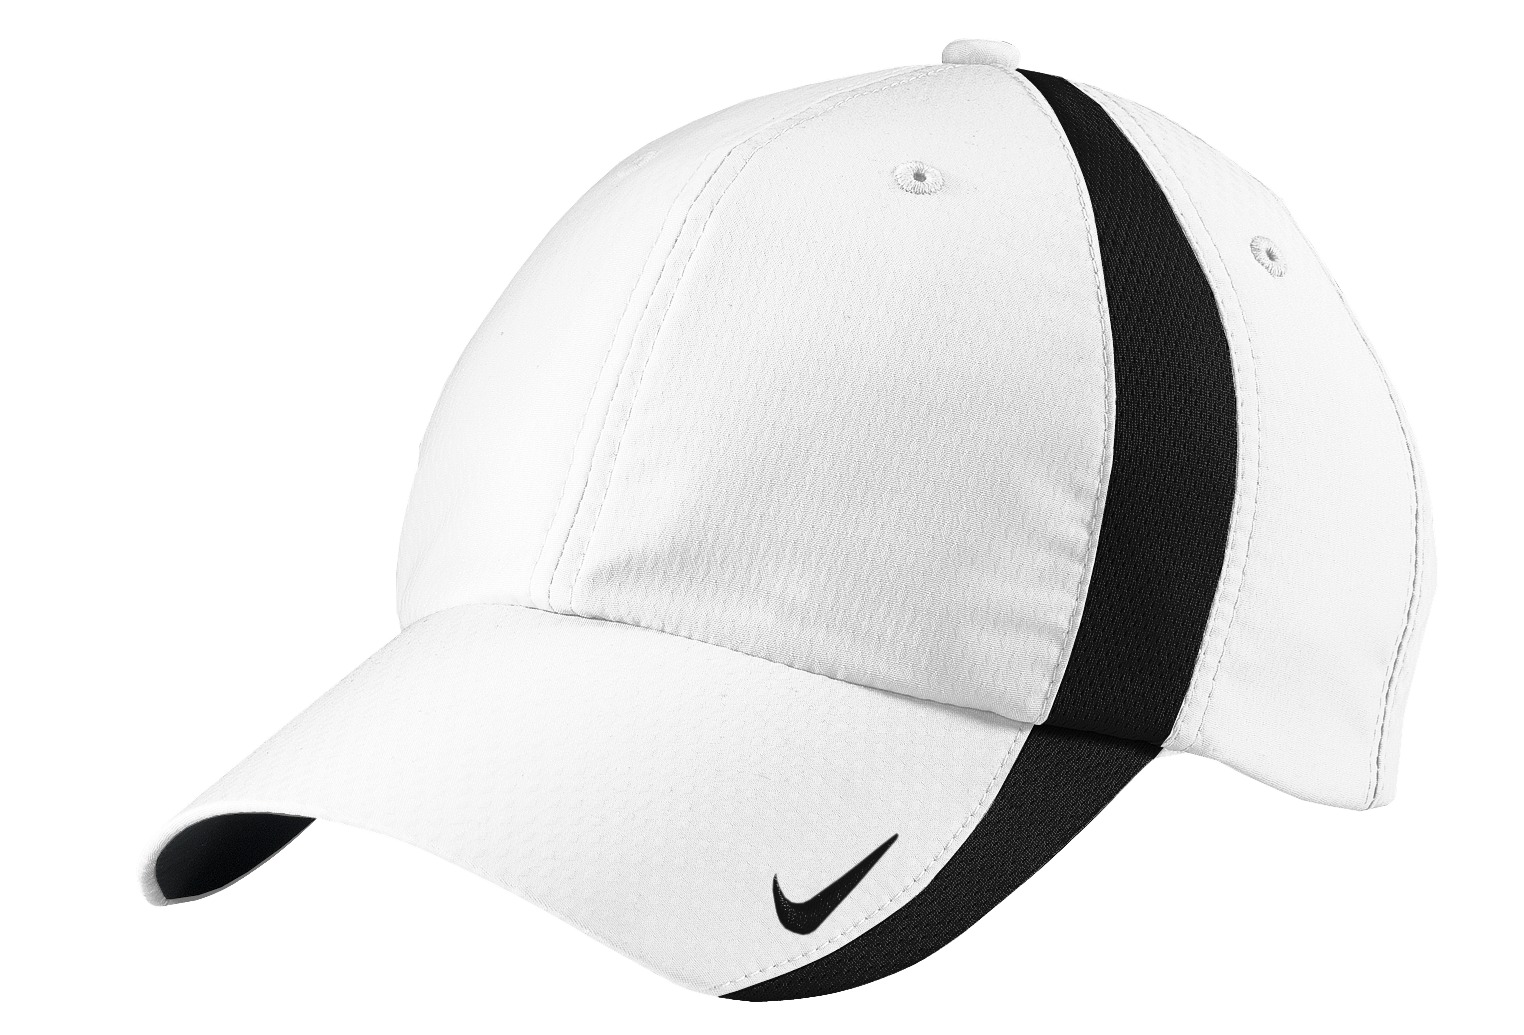 Nike Sphere Dry Cap.  247077 - White/ Black